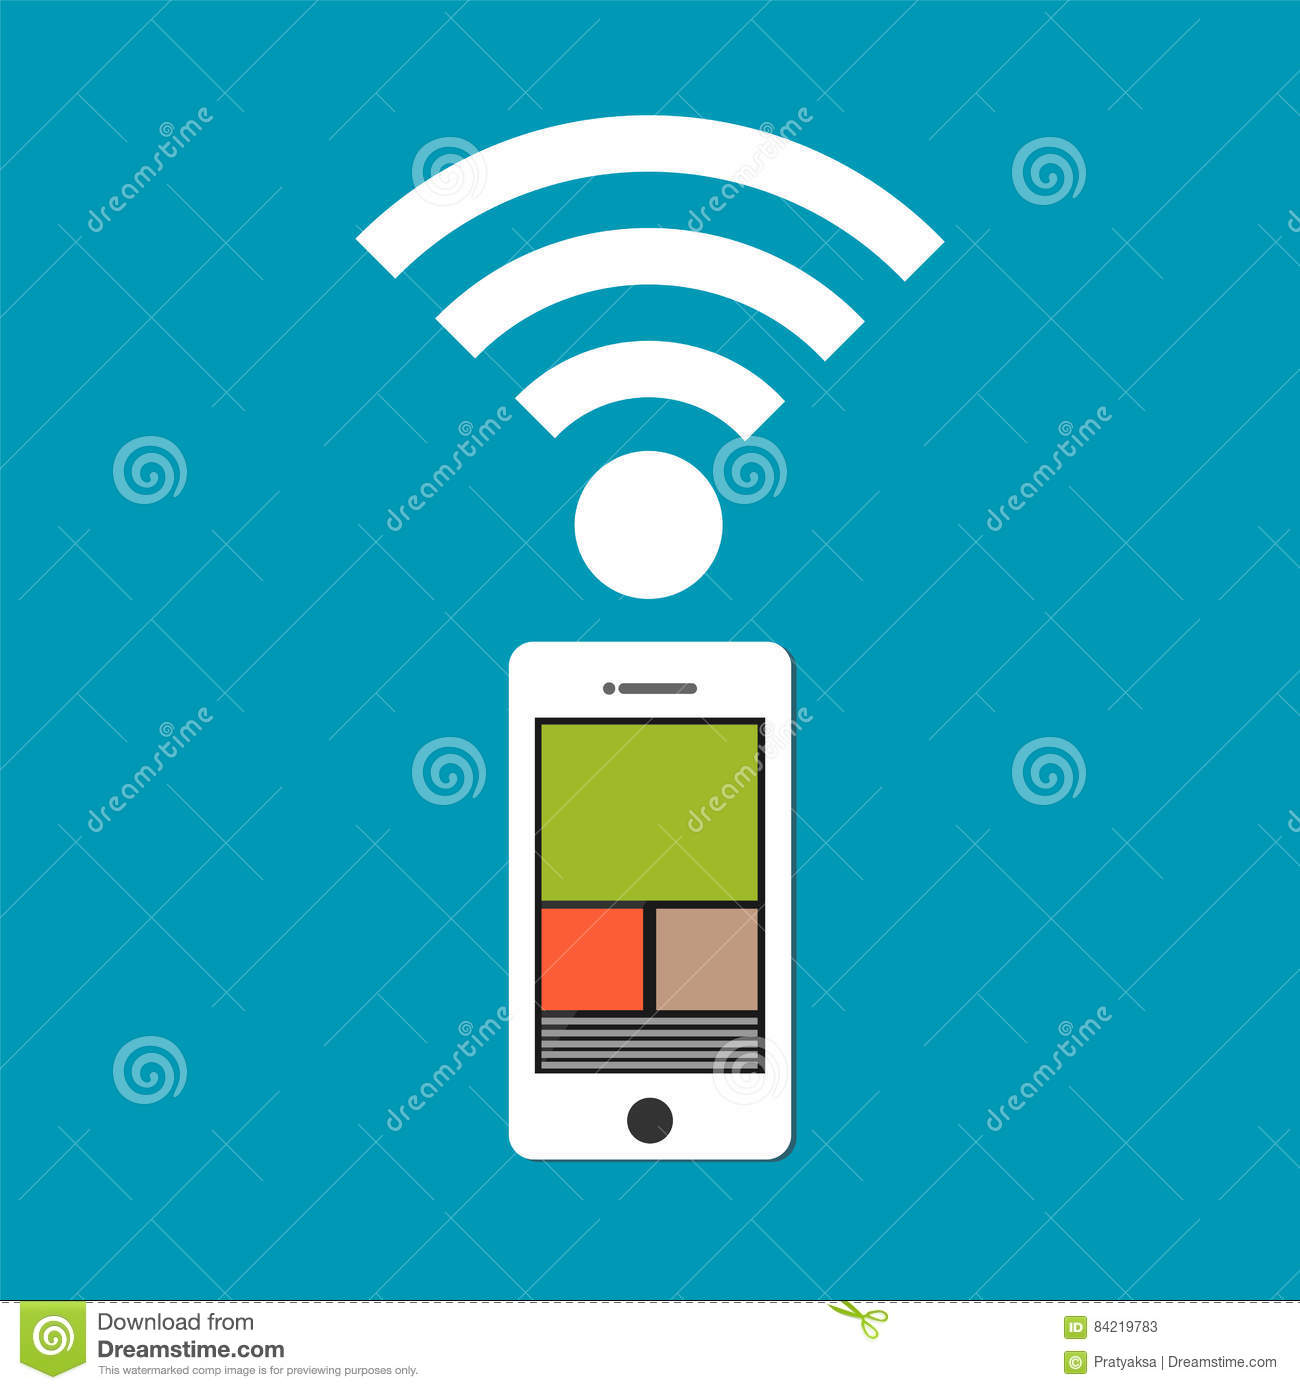 Mobile phone with wireless signal. Mobile technology